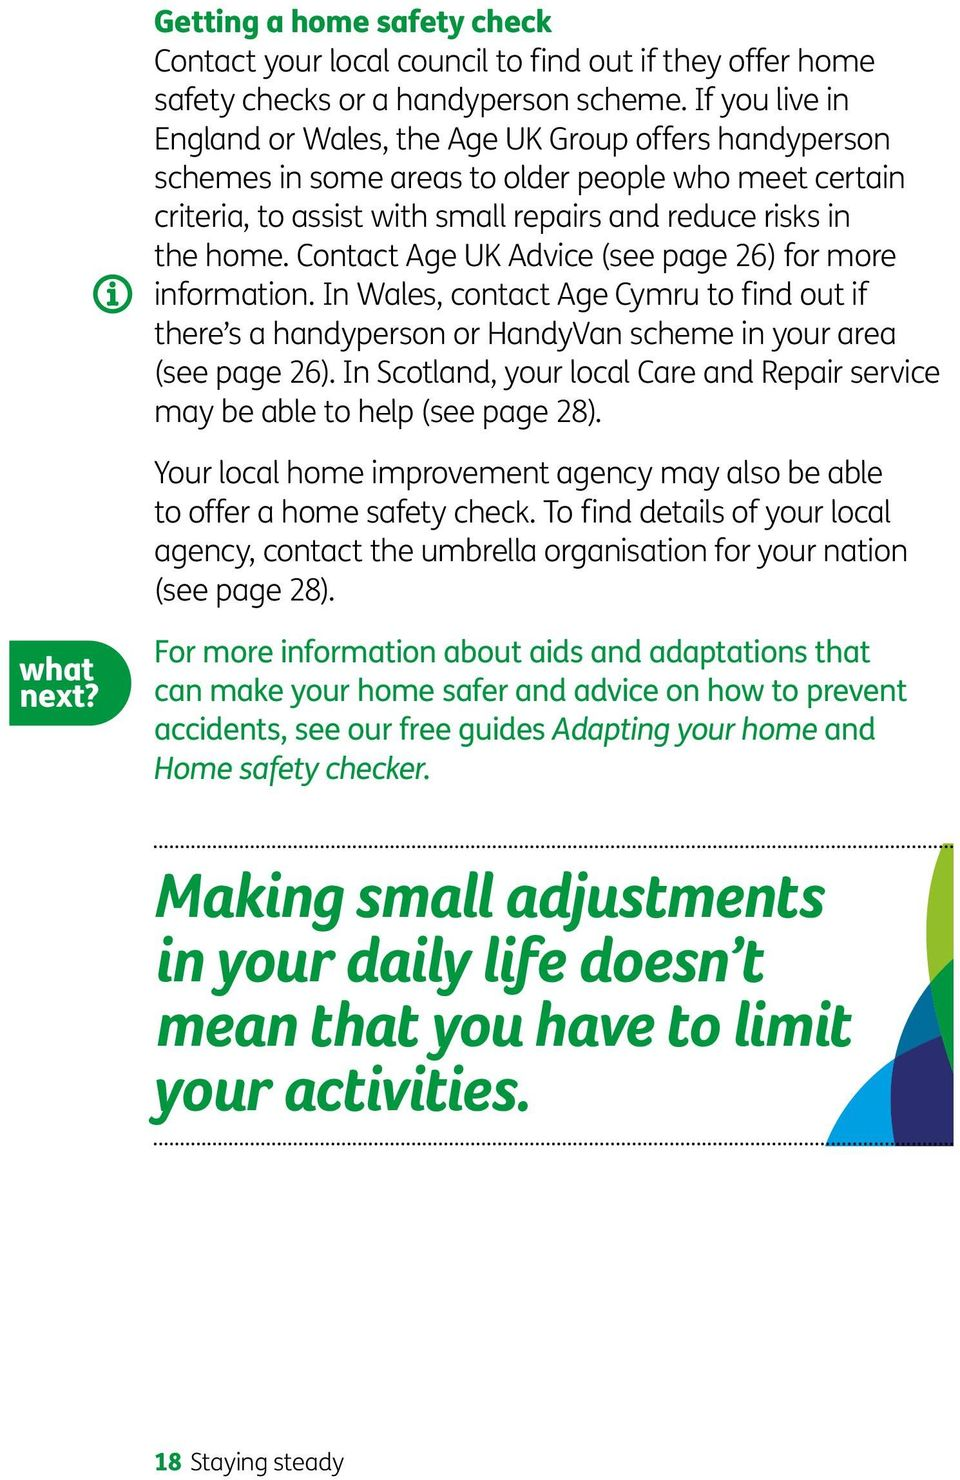 Contact Age UK Advice (see page 26) for more information. In Wales, contact Age Cymru to find out if there s a handyperson or HandyVan scheme in your area (see page 26).